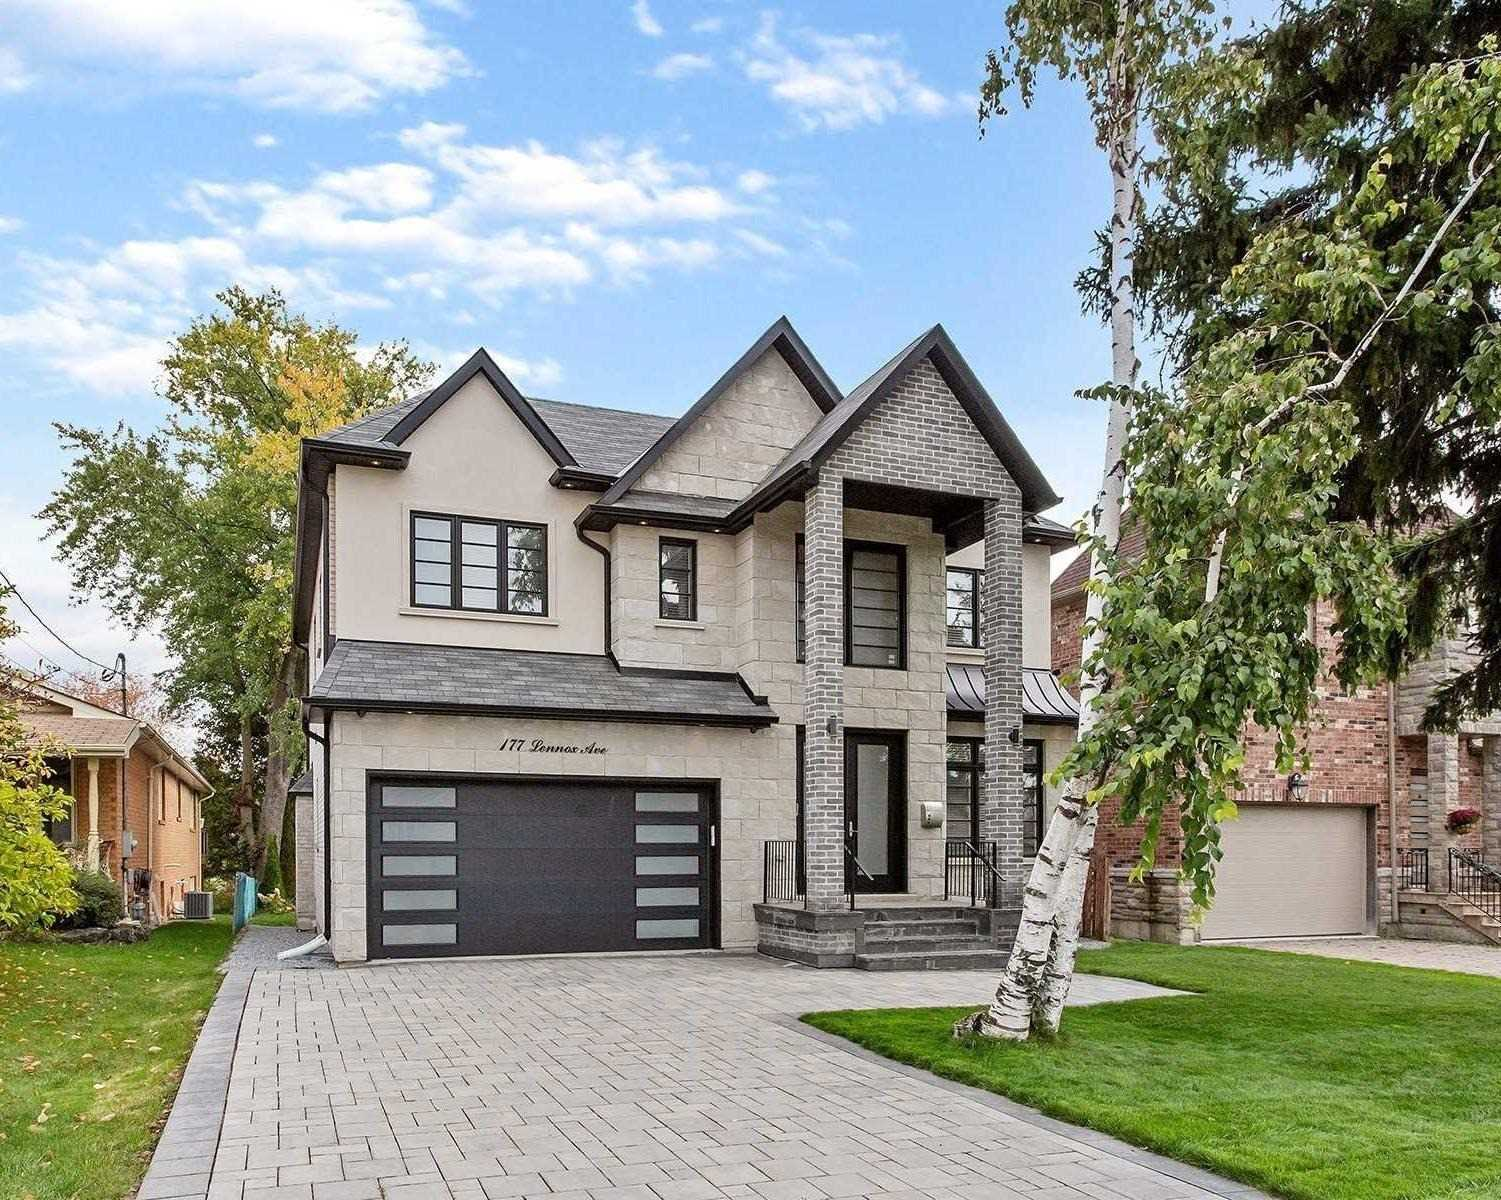 177 Lennox Ave, Richmond Hill Ontario, Canada